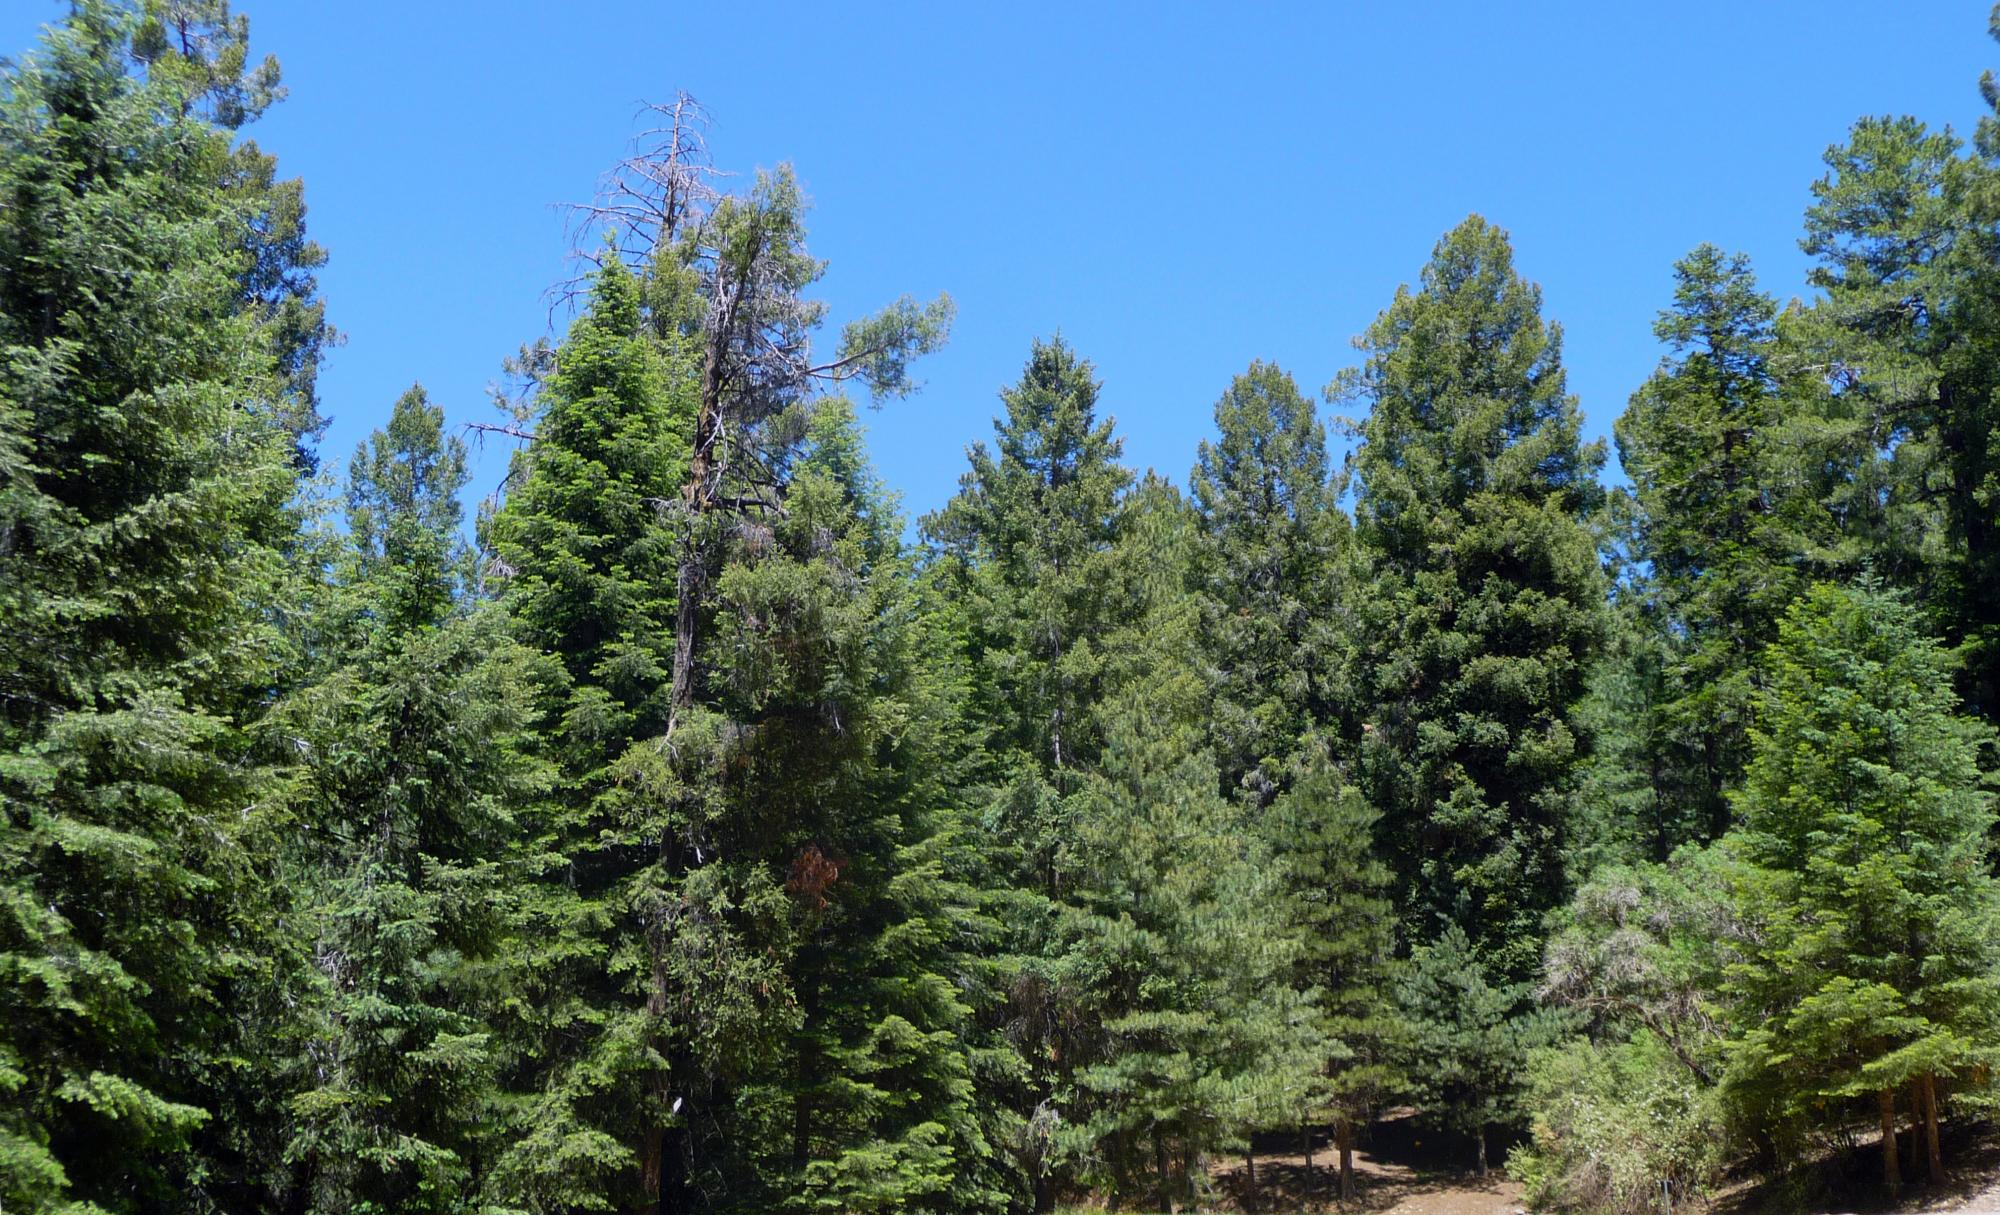 Mixed conifer forests like this one high up in the Catalina Mountains and the animals dependent on them could disappear in the near future due to a steadily warming and drying climate in the Southwest.